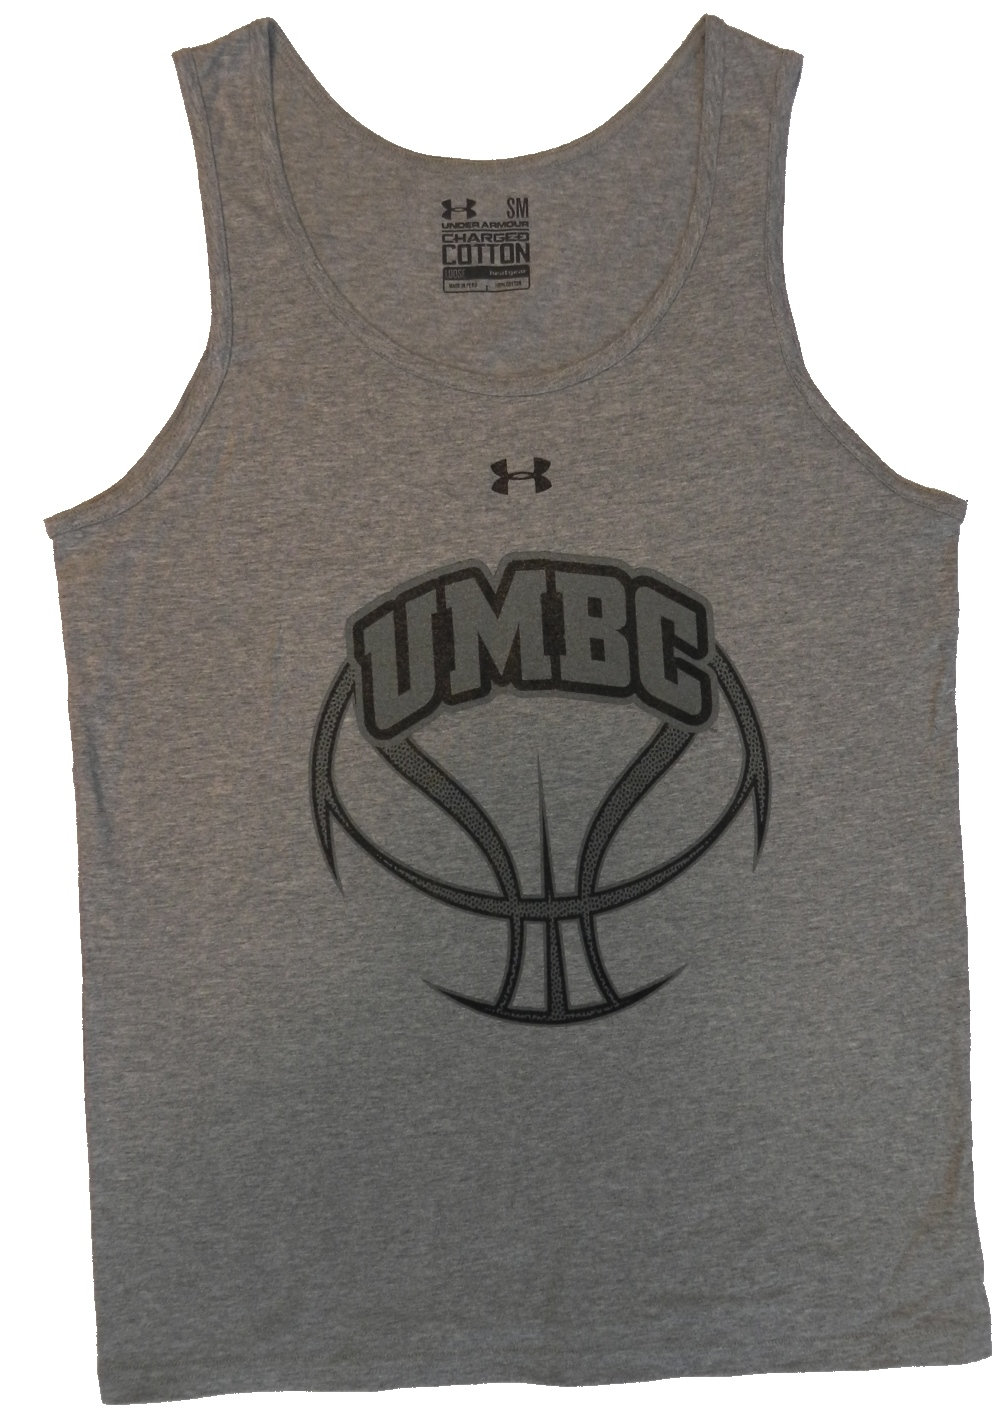 BASKETBALL UNDER ARMOUR TANK TOP